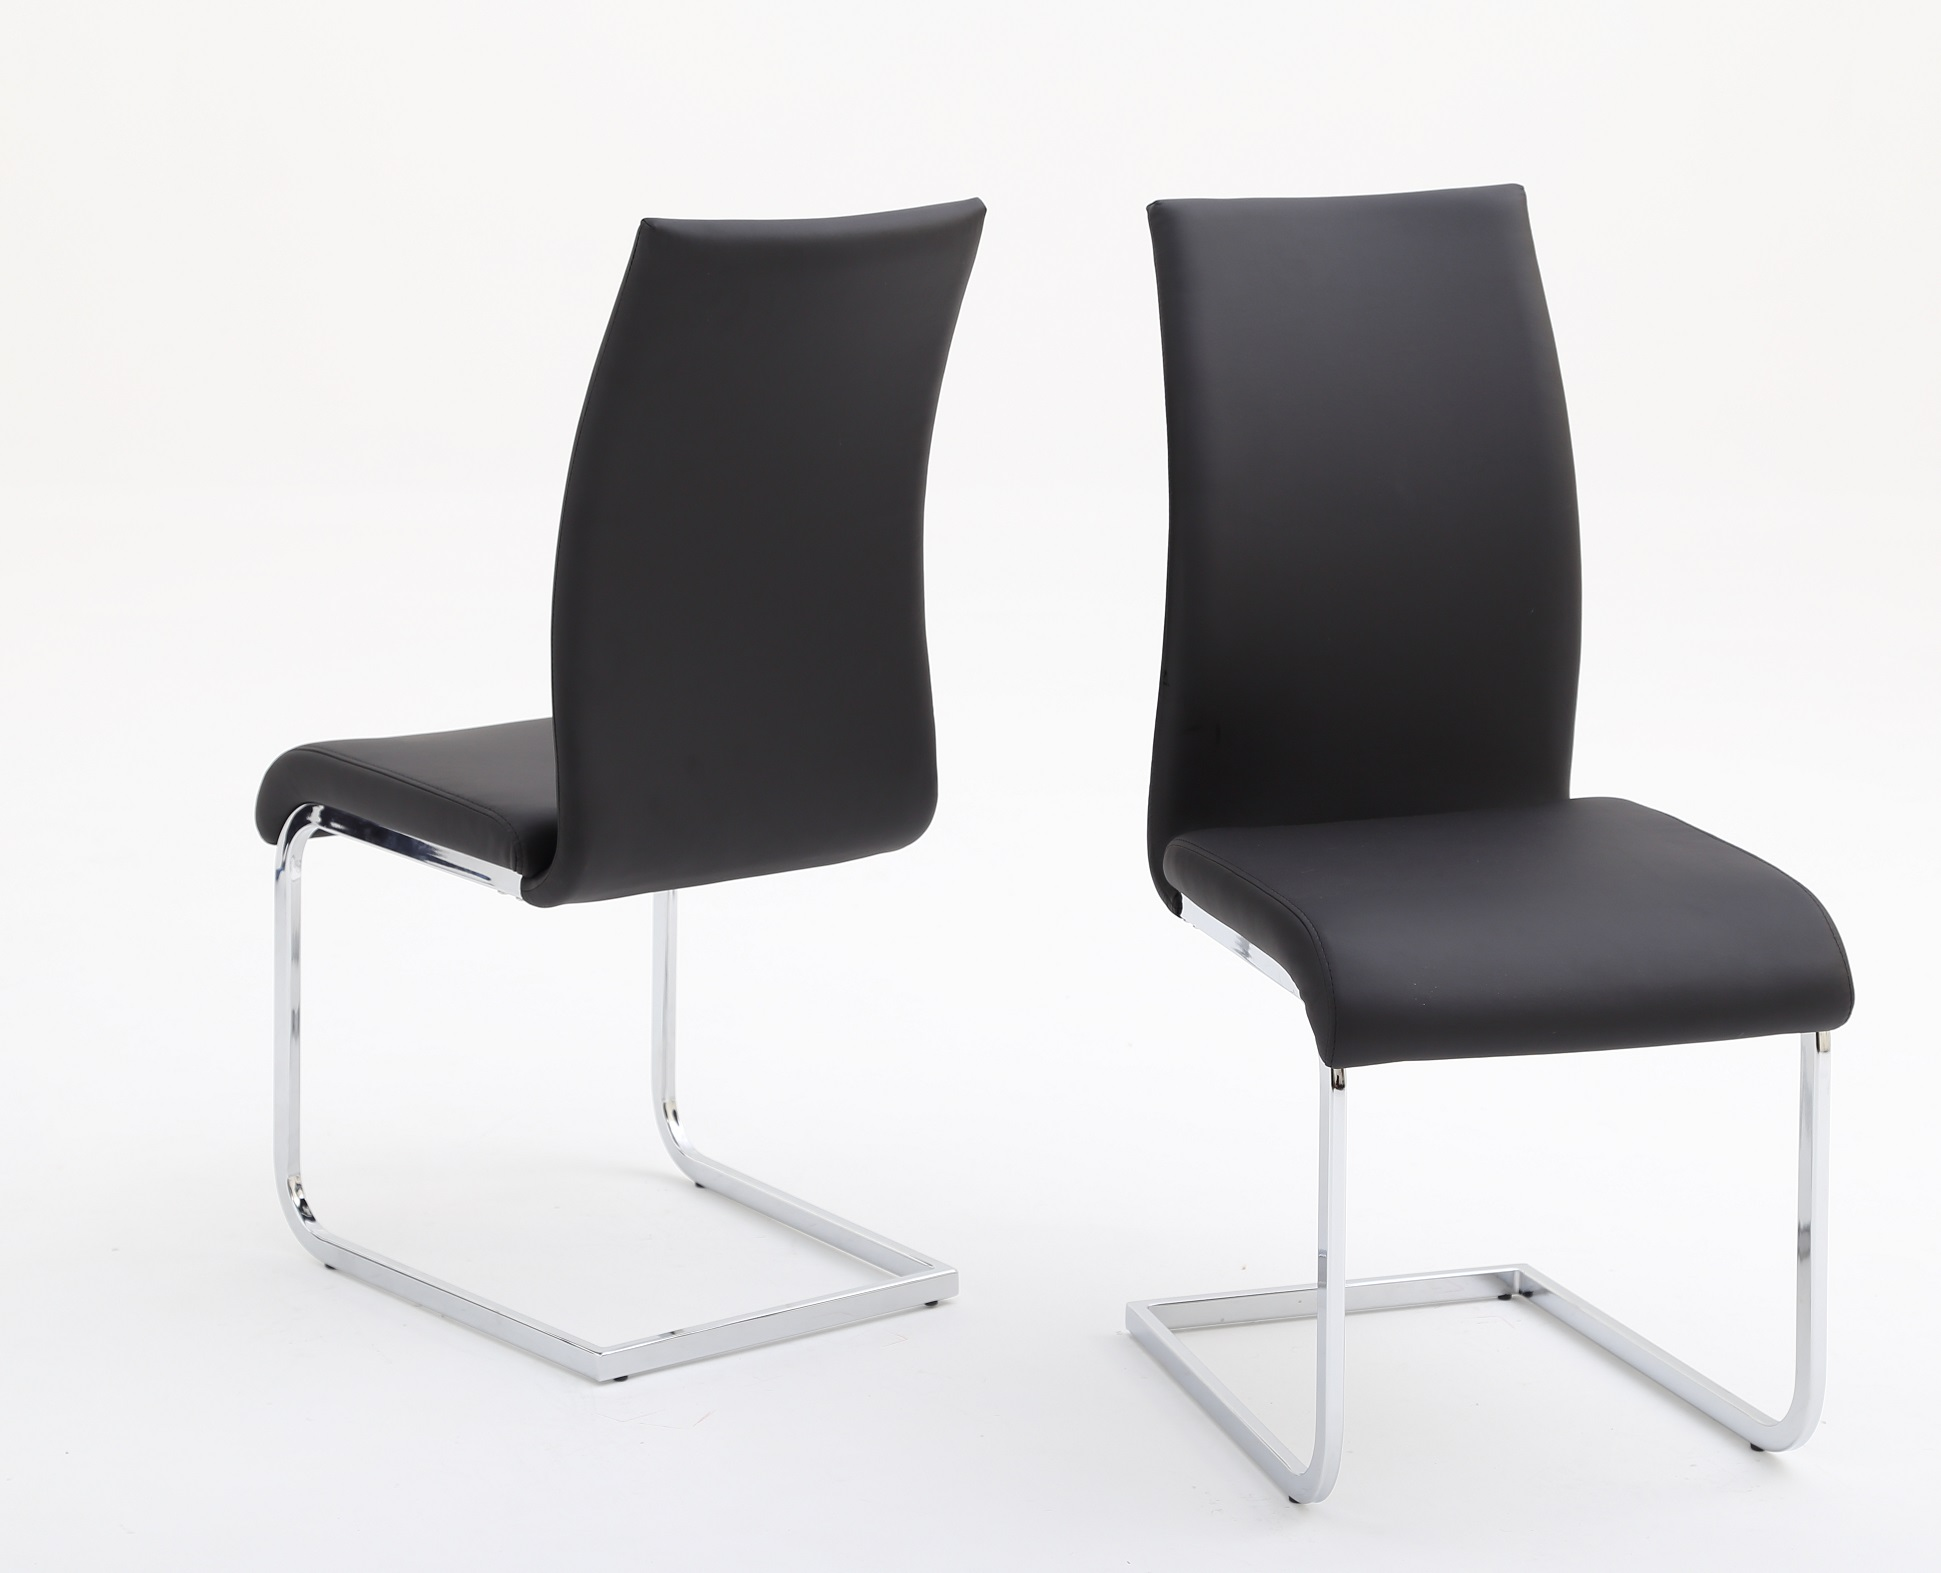 https://www.firstfurniture.co.uk/pub/media/catalog/product/p/a/paolo_chair_black_1.jpg